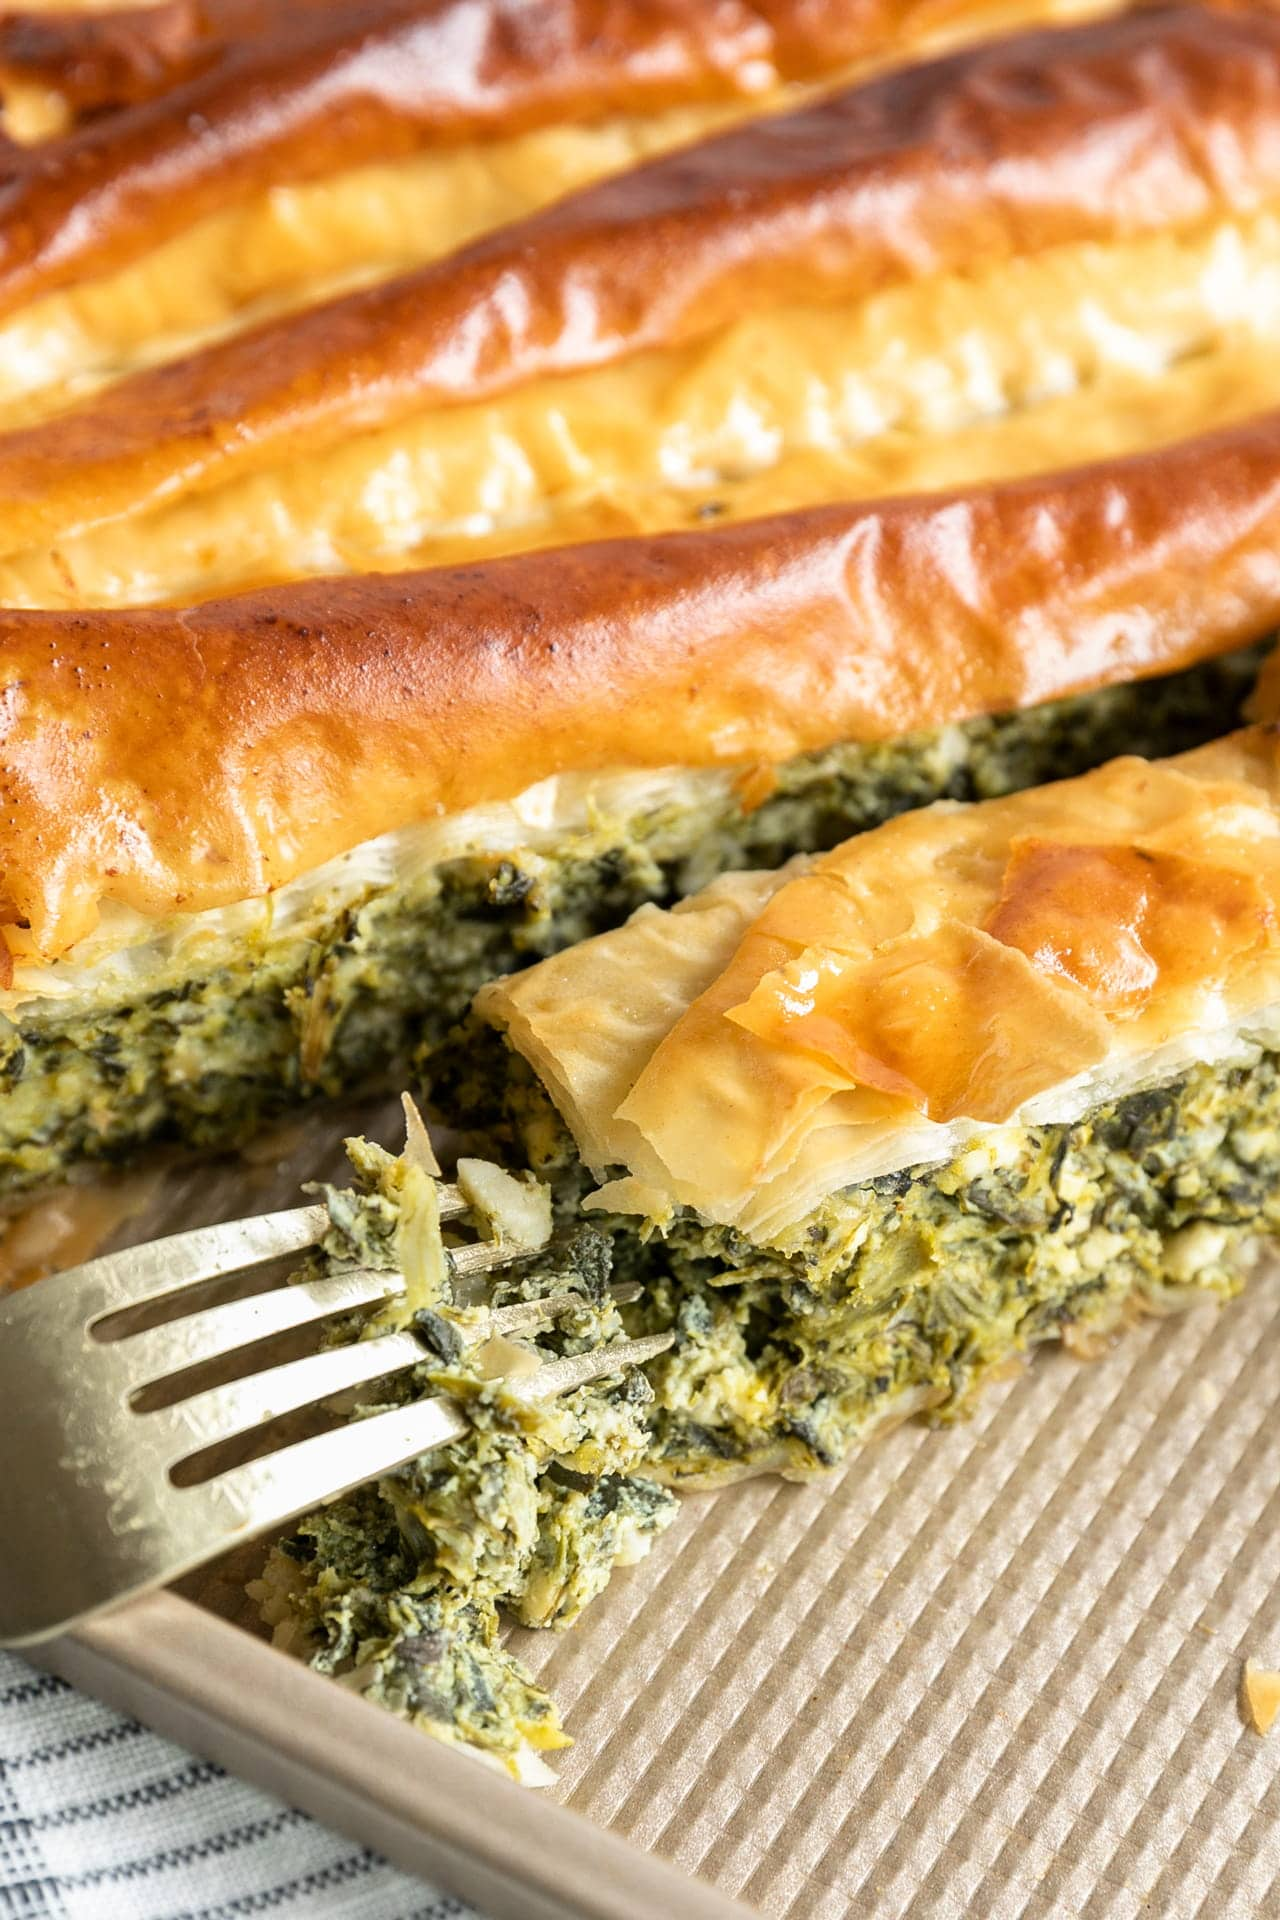 Spanakopita (Greek Spinach and Feta Pie) fresh out of the oven and sliced on an angle on a gold corrugated jelly roll baking sheet.